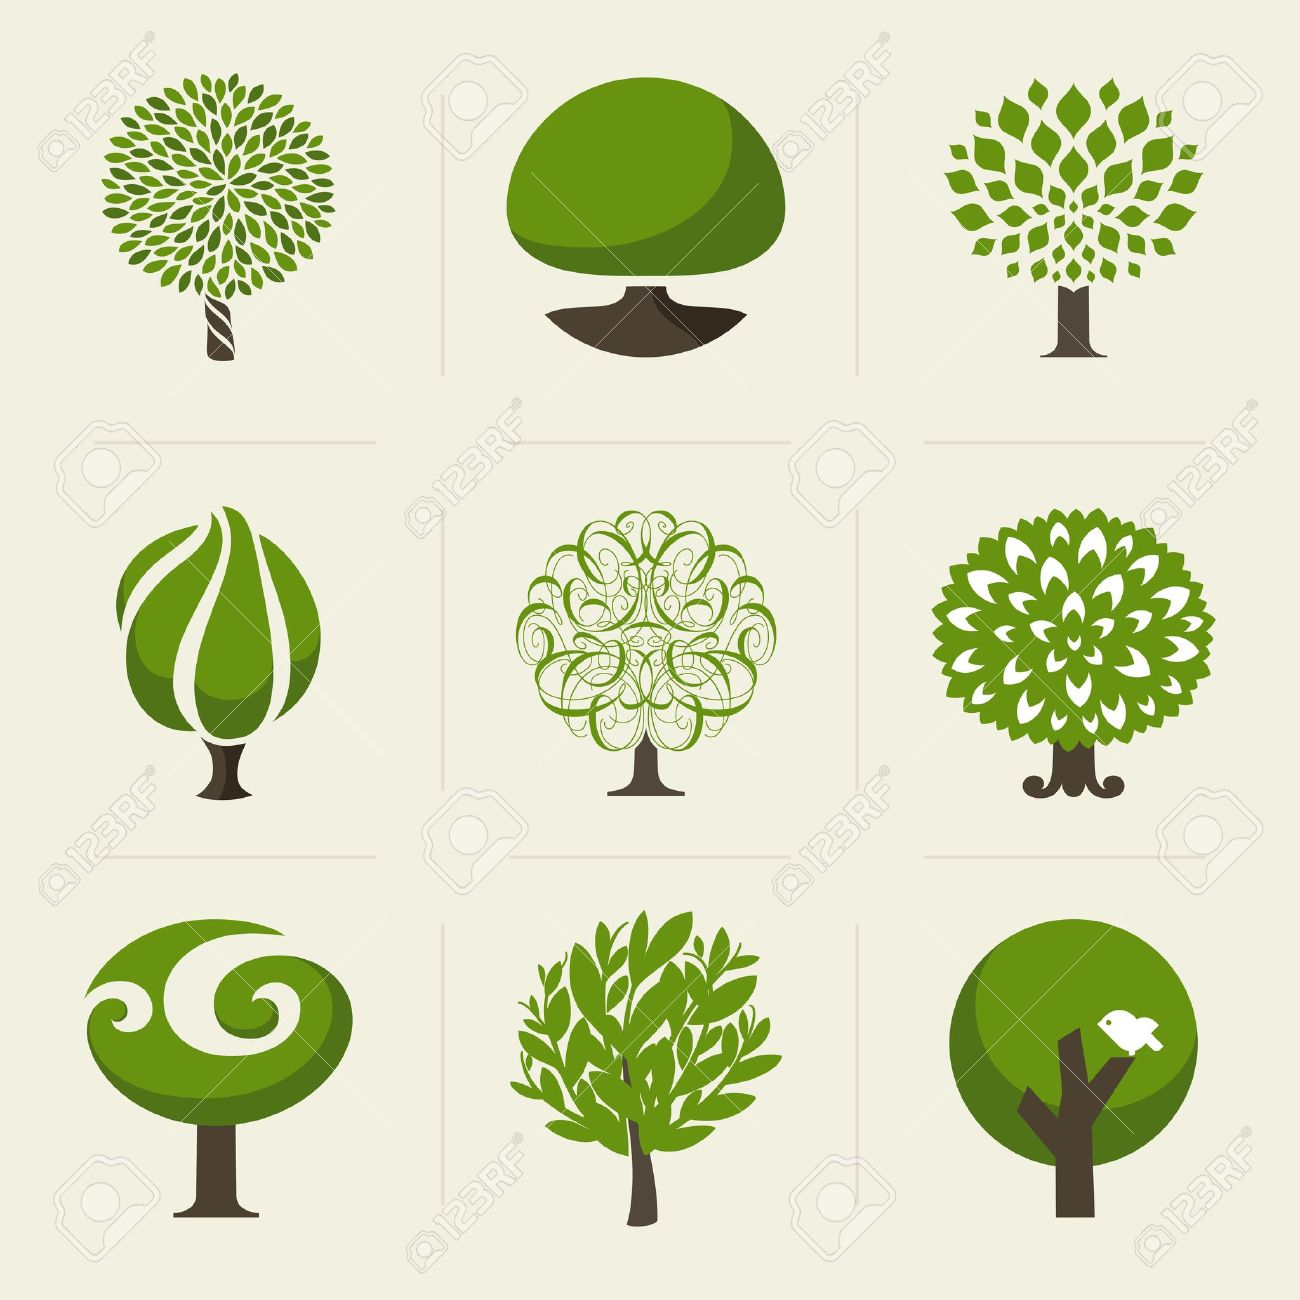 Tree - Collection of design elements Stock Vector - 21077259